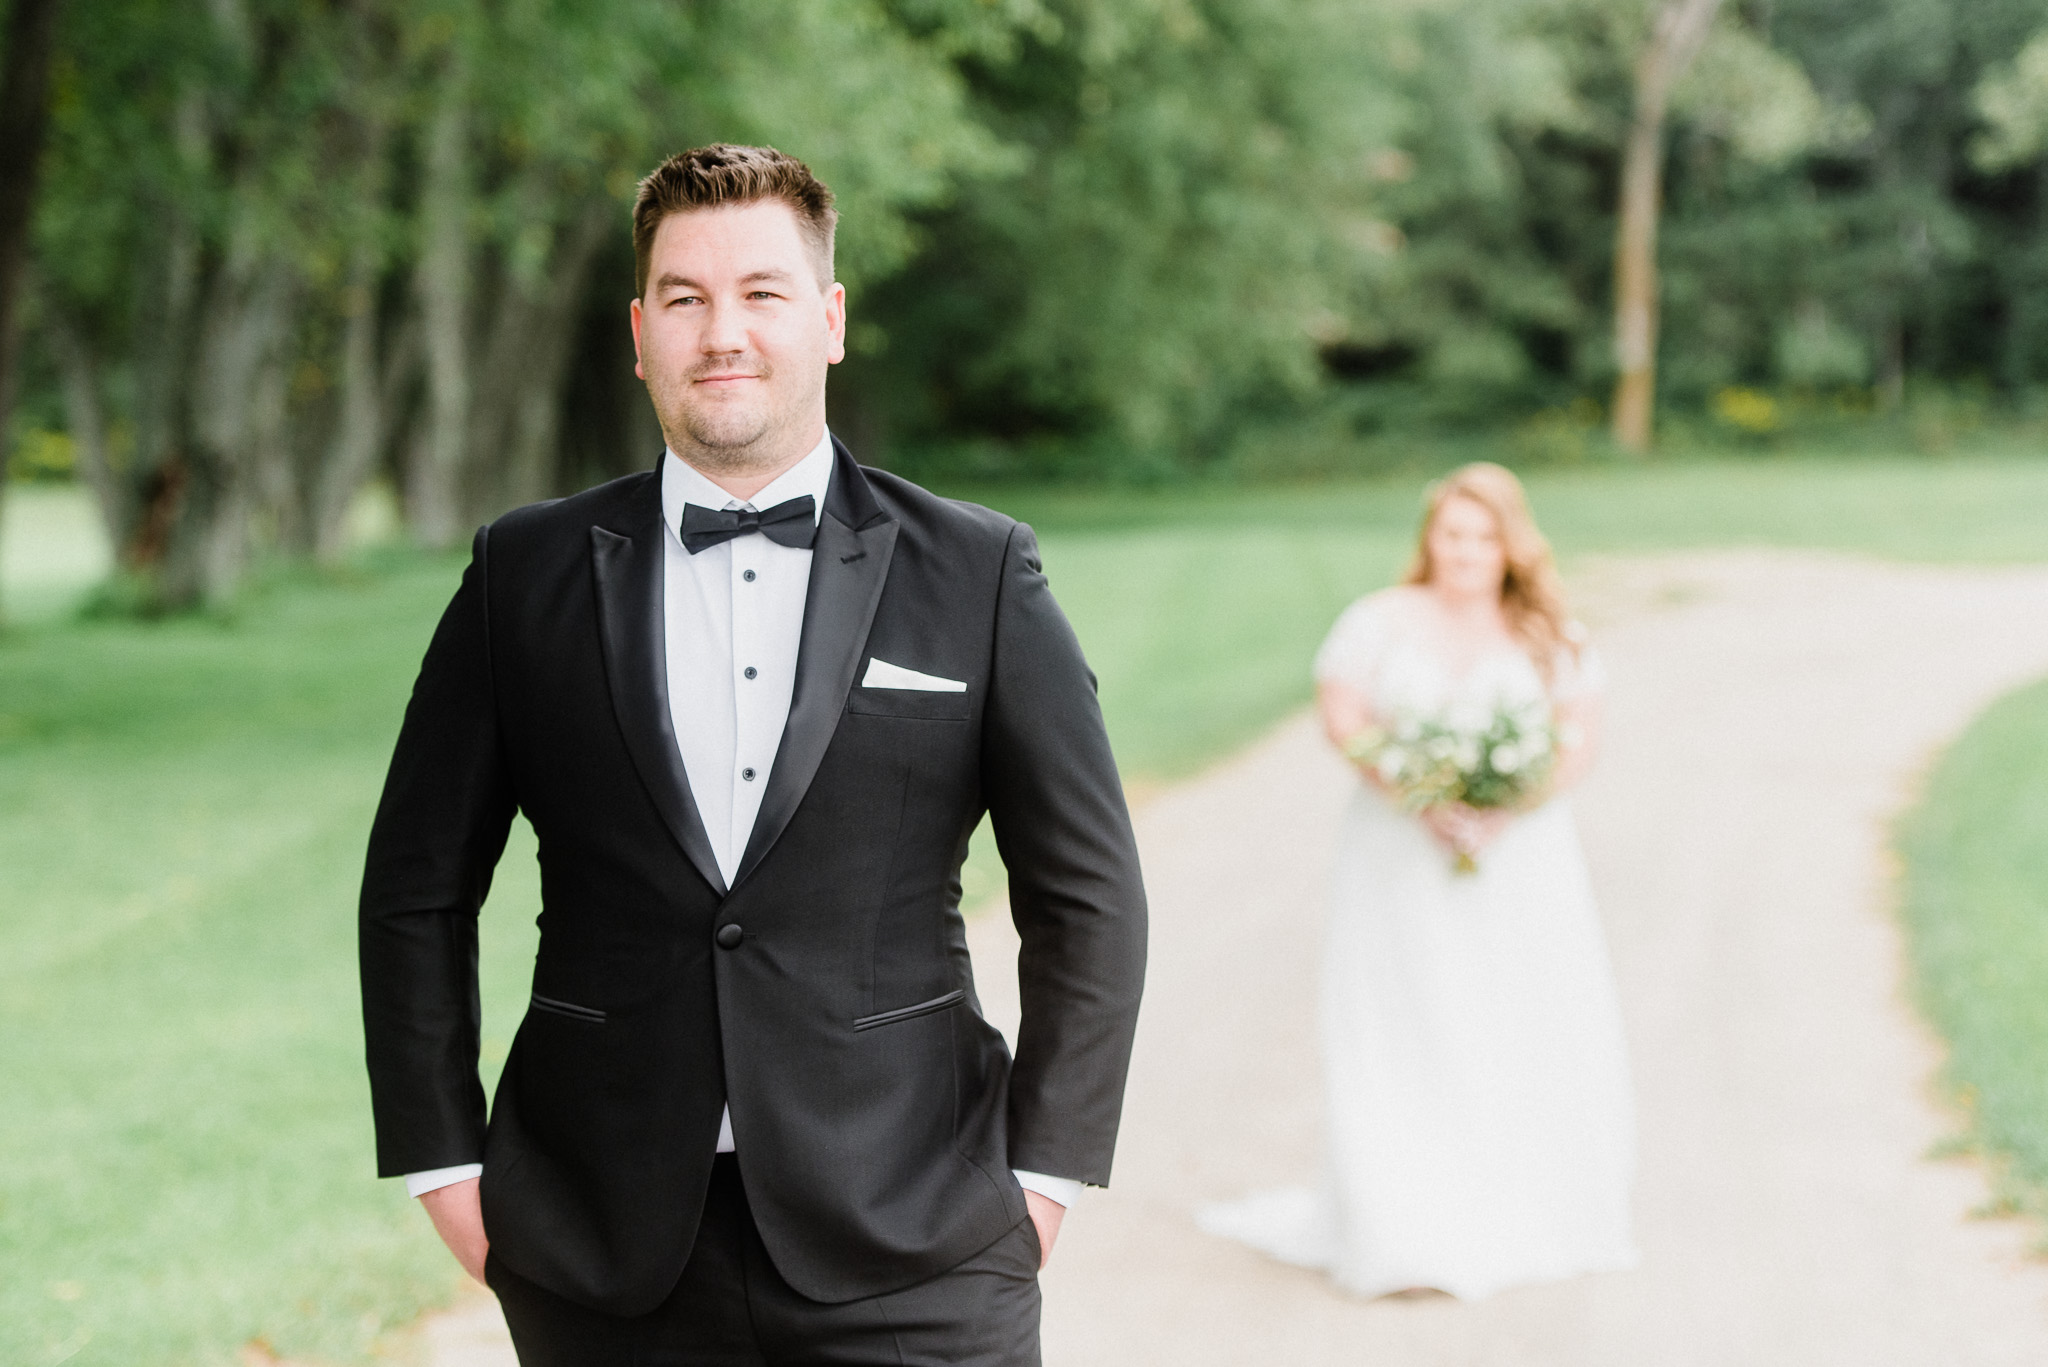 Bride and Groom Portraits at Tralee by Jenn Kavanagh Photography | Oakville, Ontario Wedding